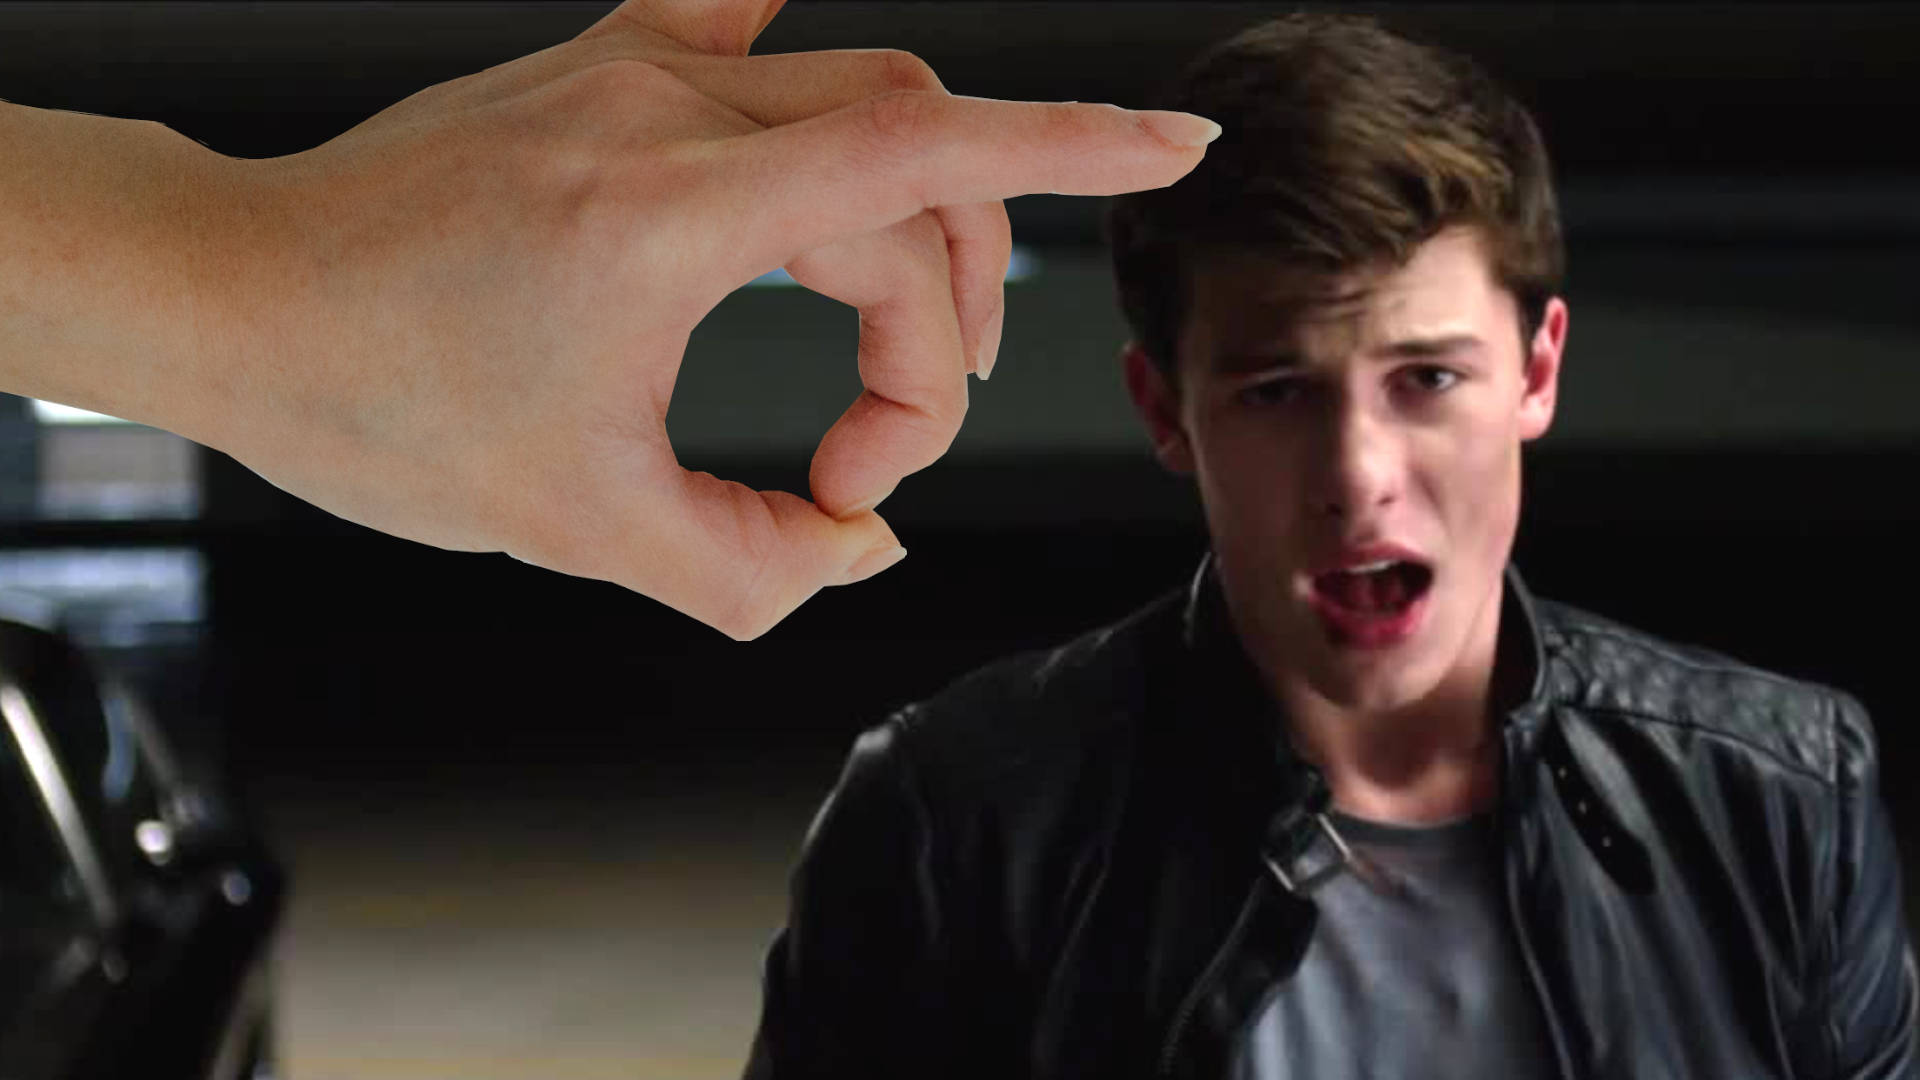 Shawn Mendes trend sees fans flicking him in 'Stitches